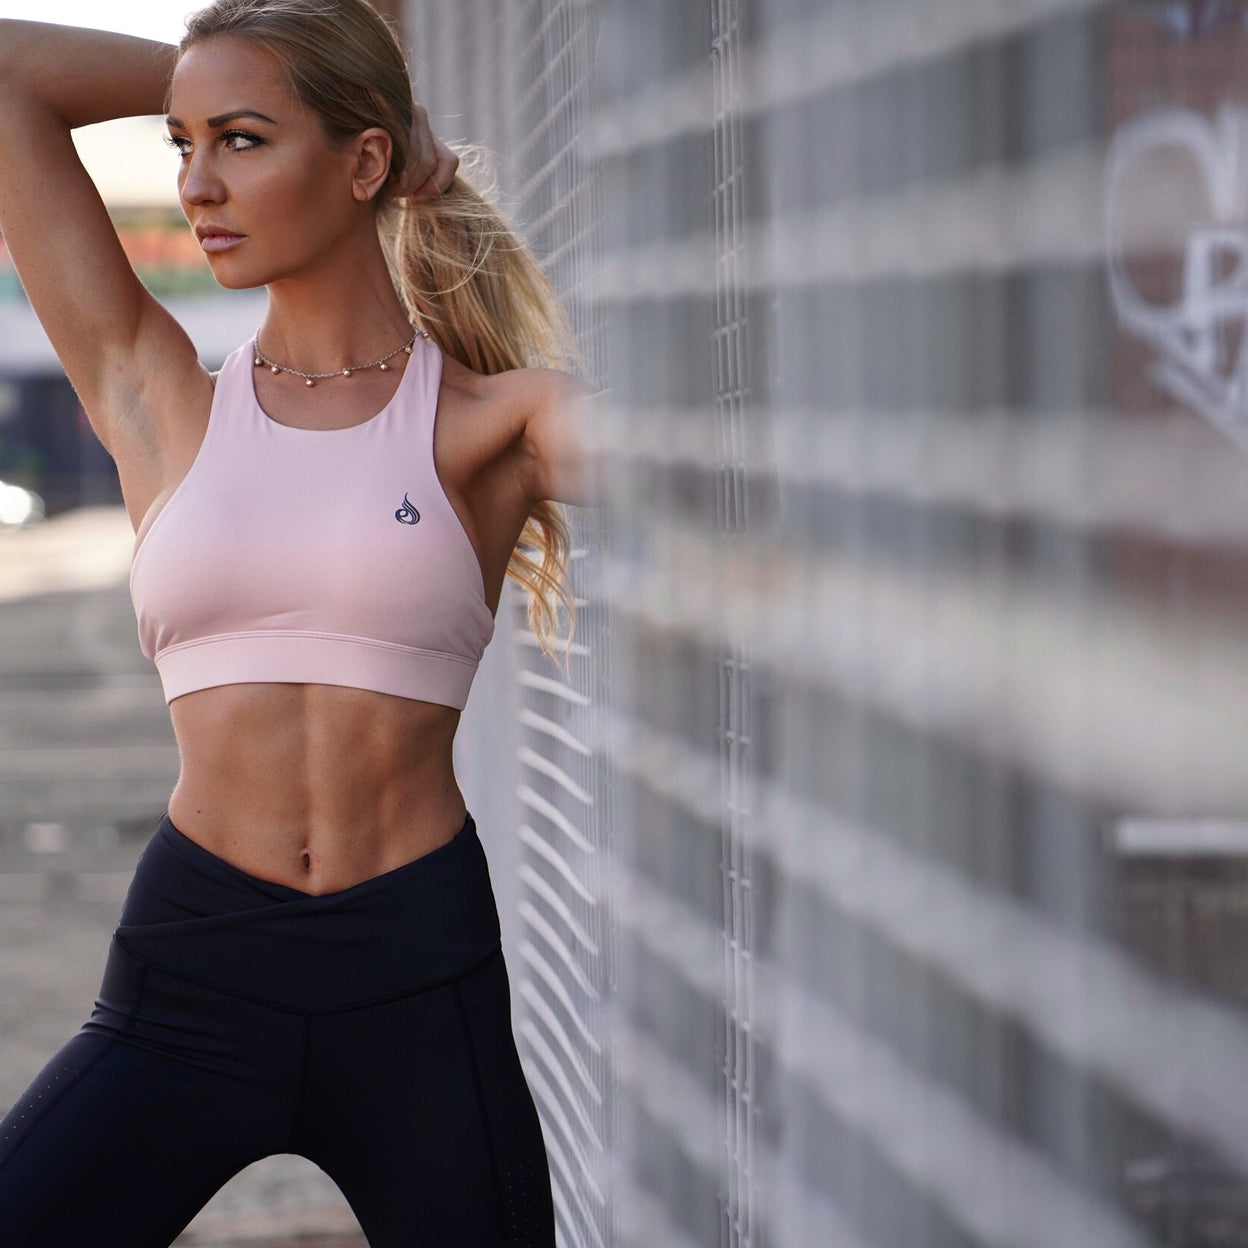 12 TIPS ON HOW TO STAY MOTIVATED TO WORKOUT